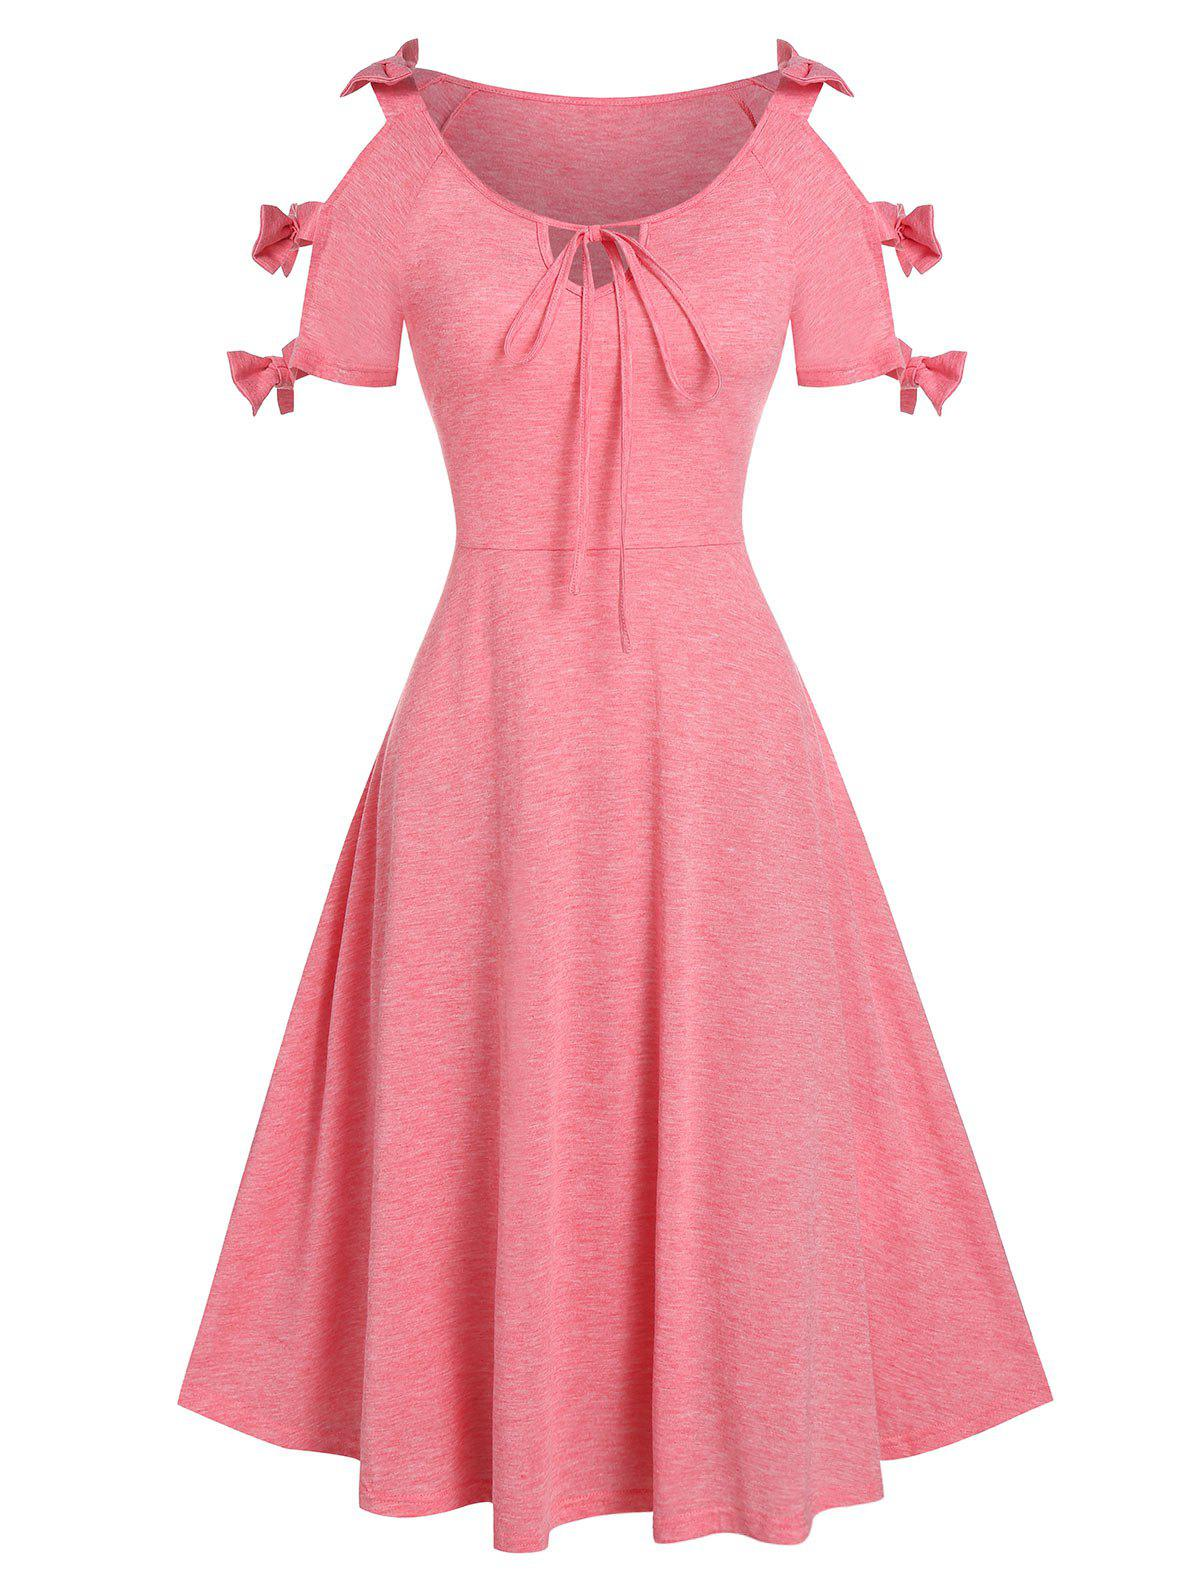 Bowknot Cutout Knee Length Dress - FLAMINGO PINK 3XL